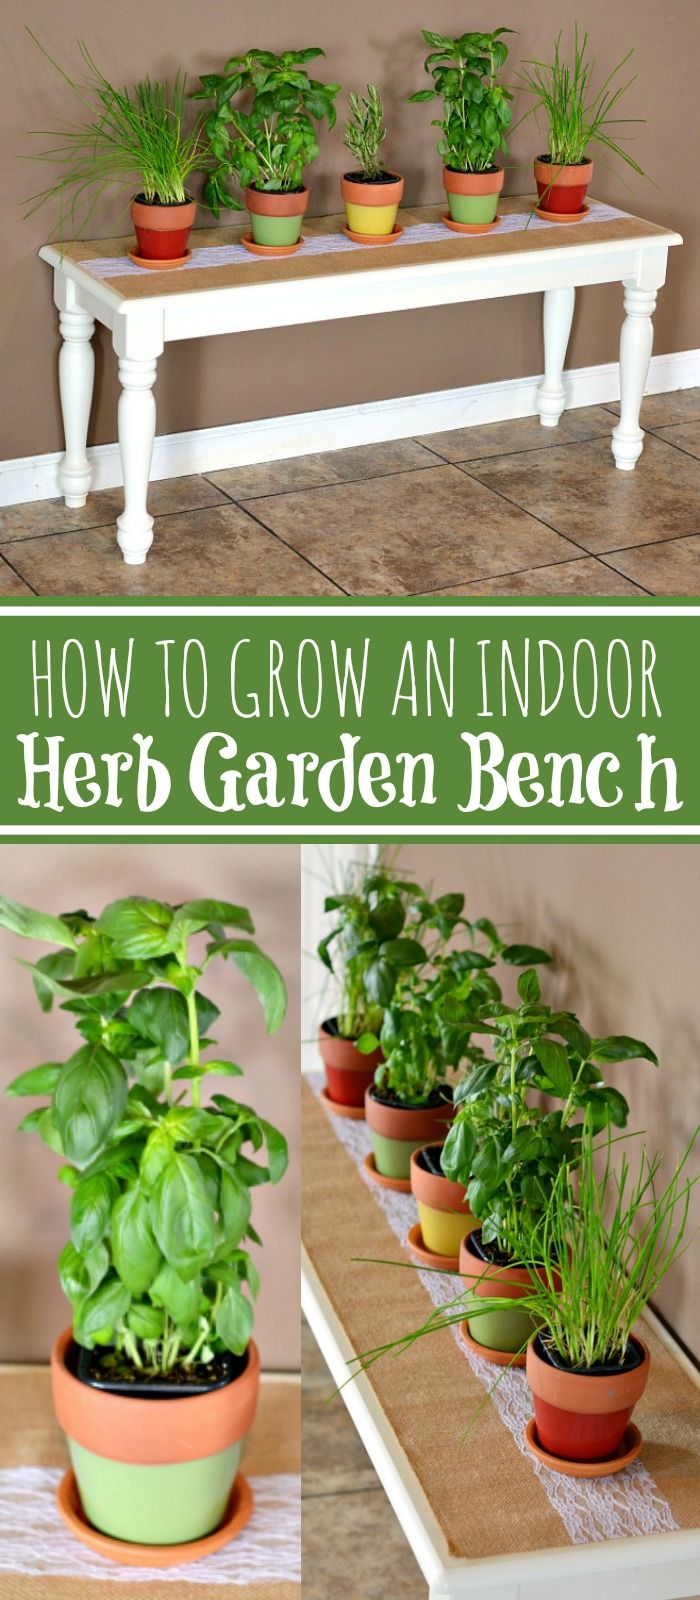 Potted Herb Garden Ideas stunning tidy garden ideas for flower beds flower garden ideas How To Grow An Indoor Potted Herb Garden Bench Diy